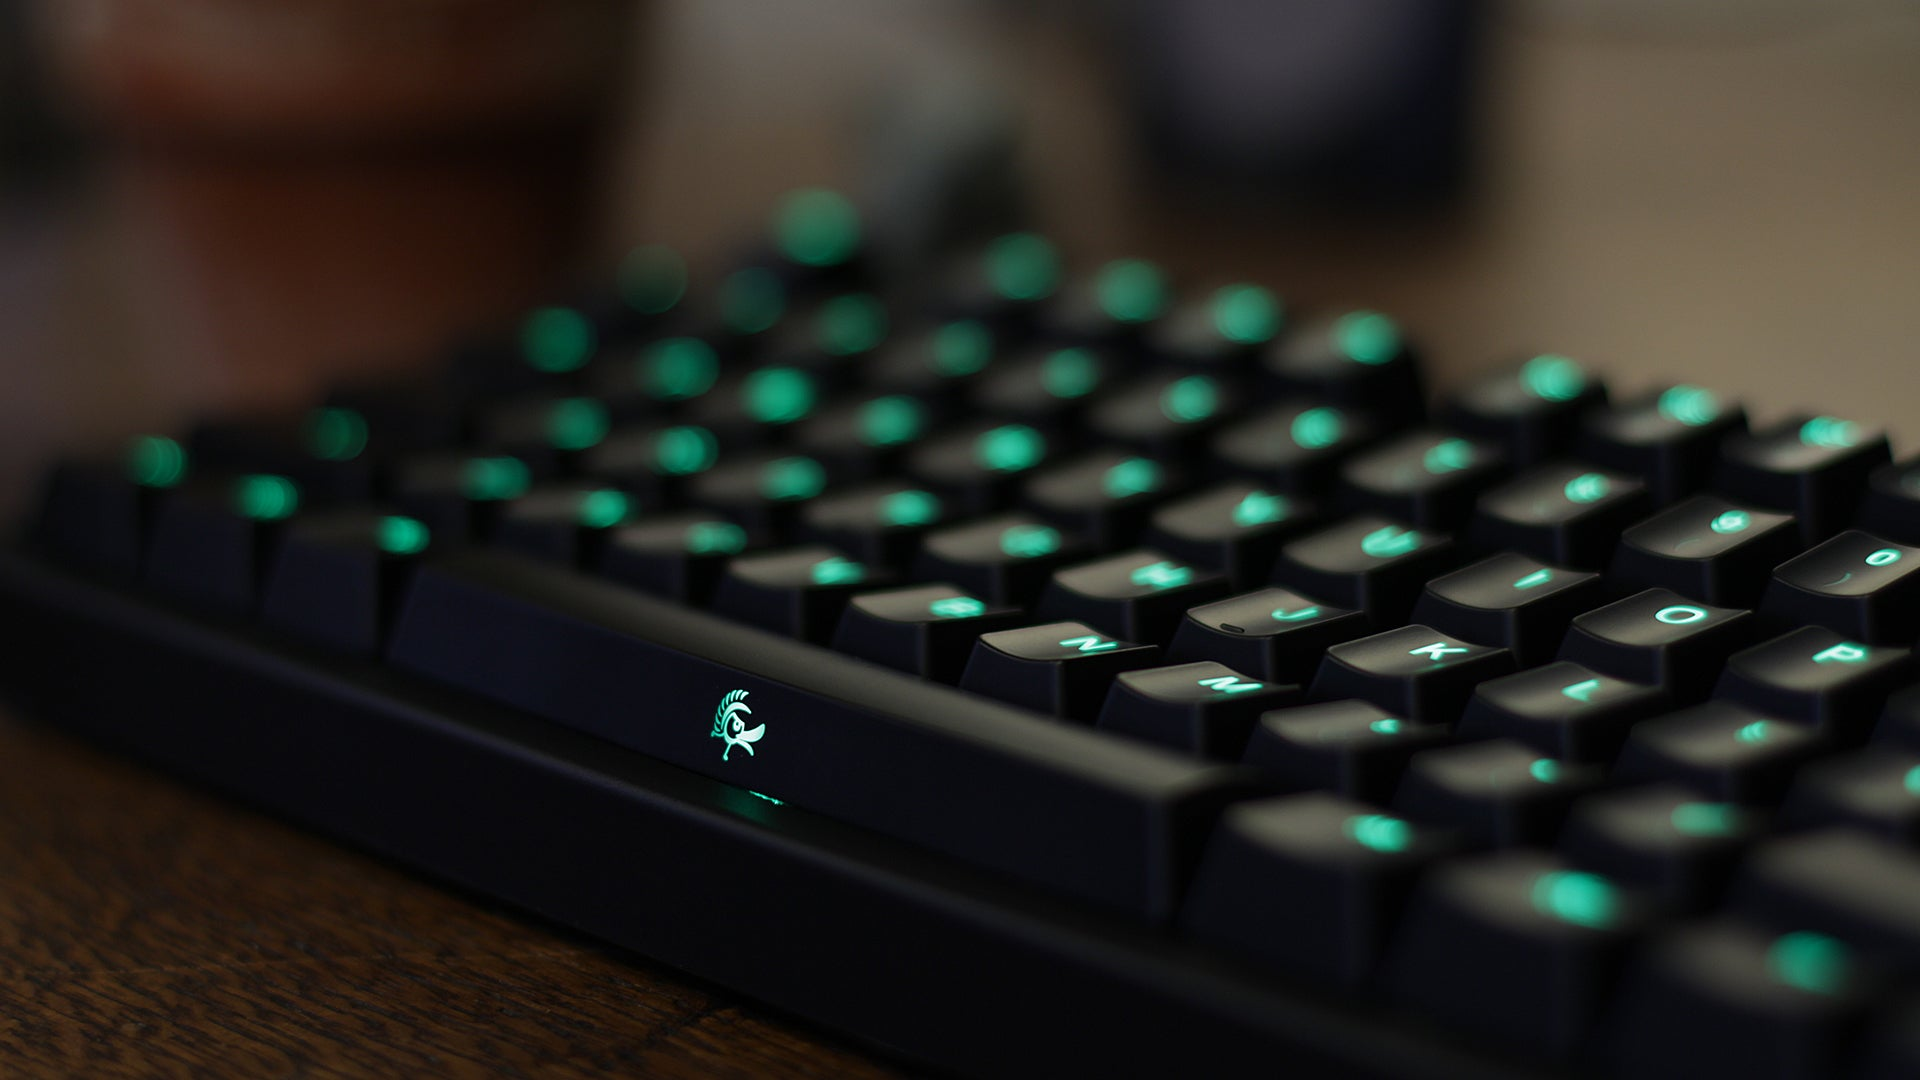 Ducky Keyboard Collection Image